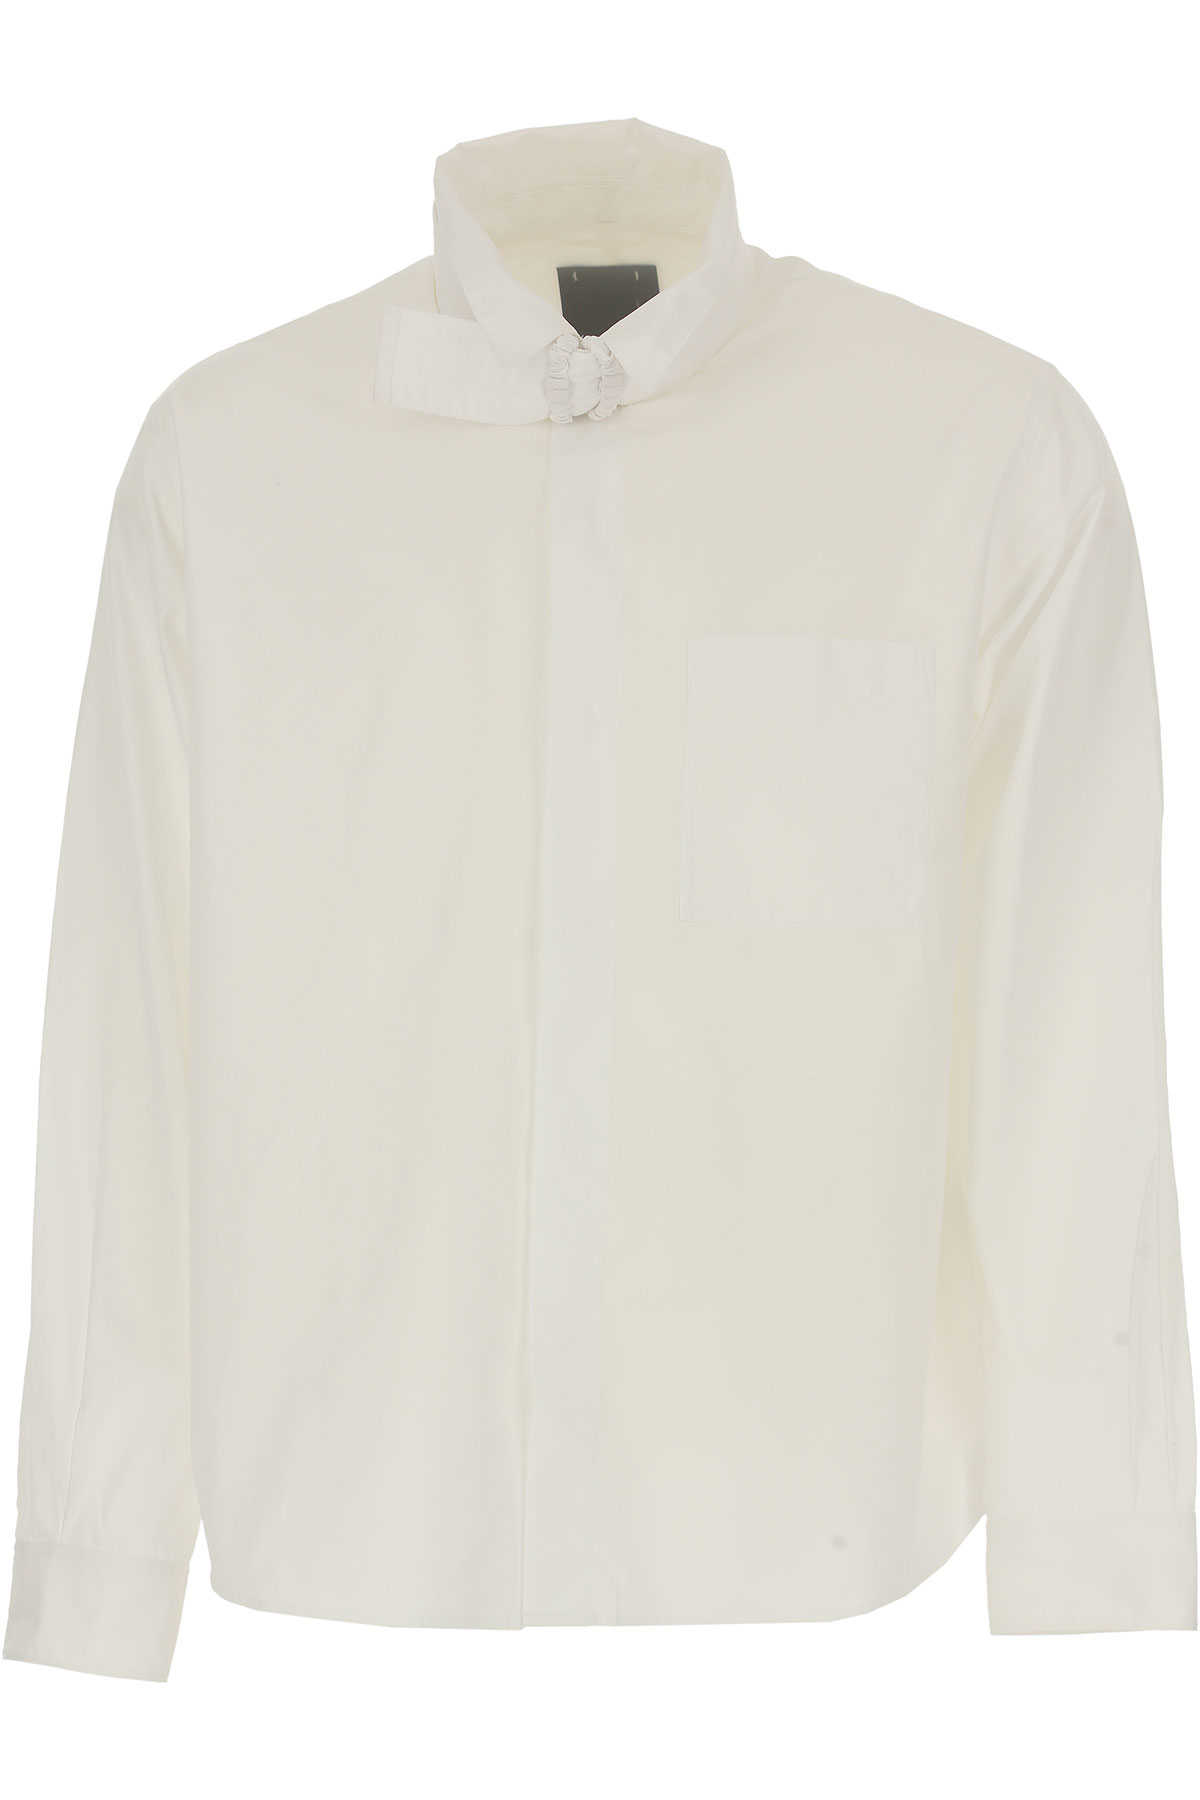 Craig Green Shirt for Men in Outlet White USA - GOOFASH